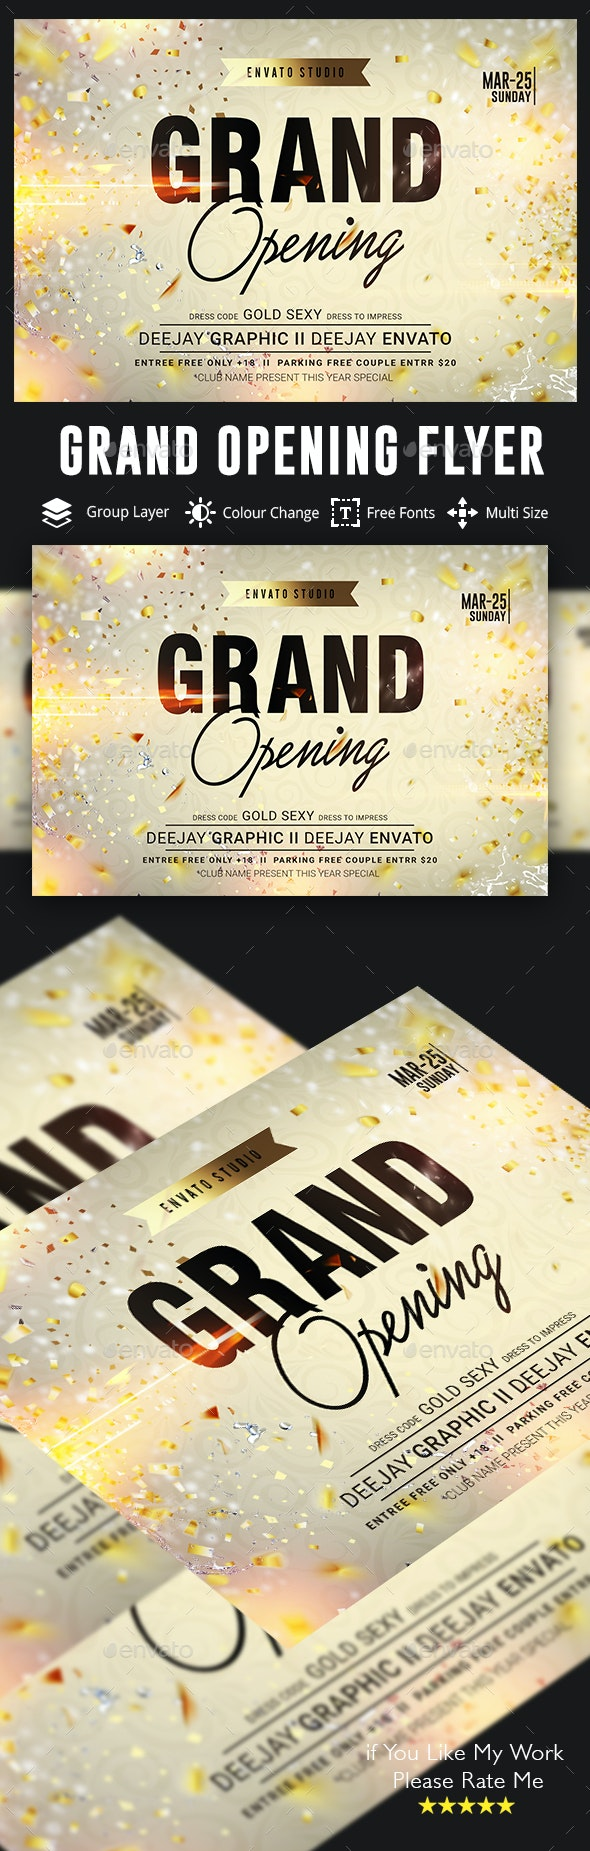 Grand Opening Flyer - Events Flyers